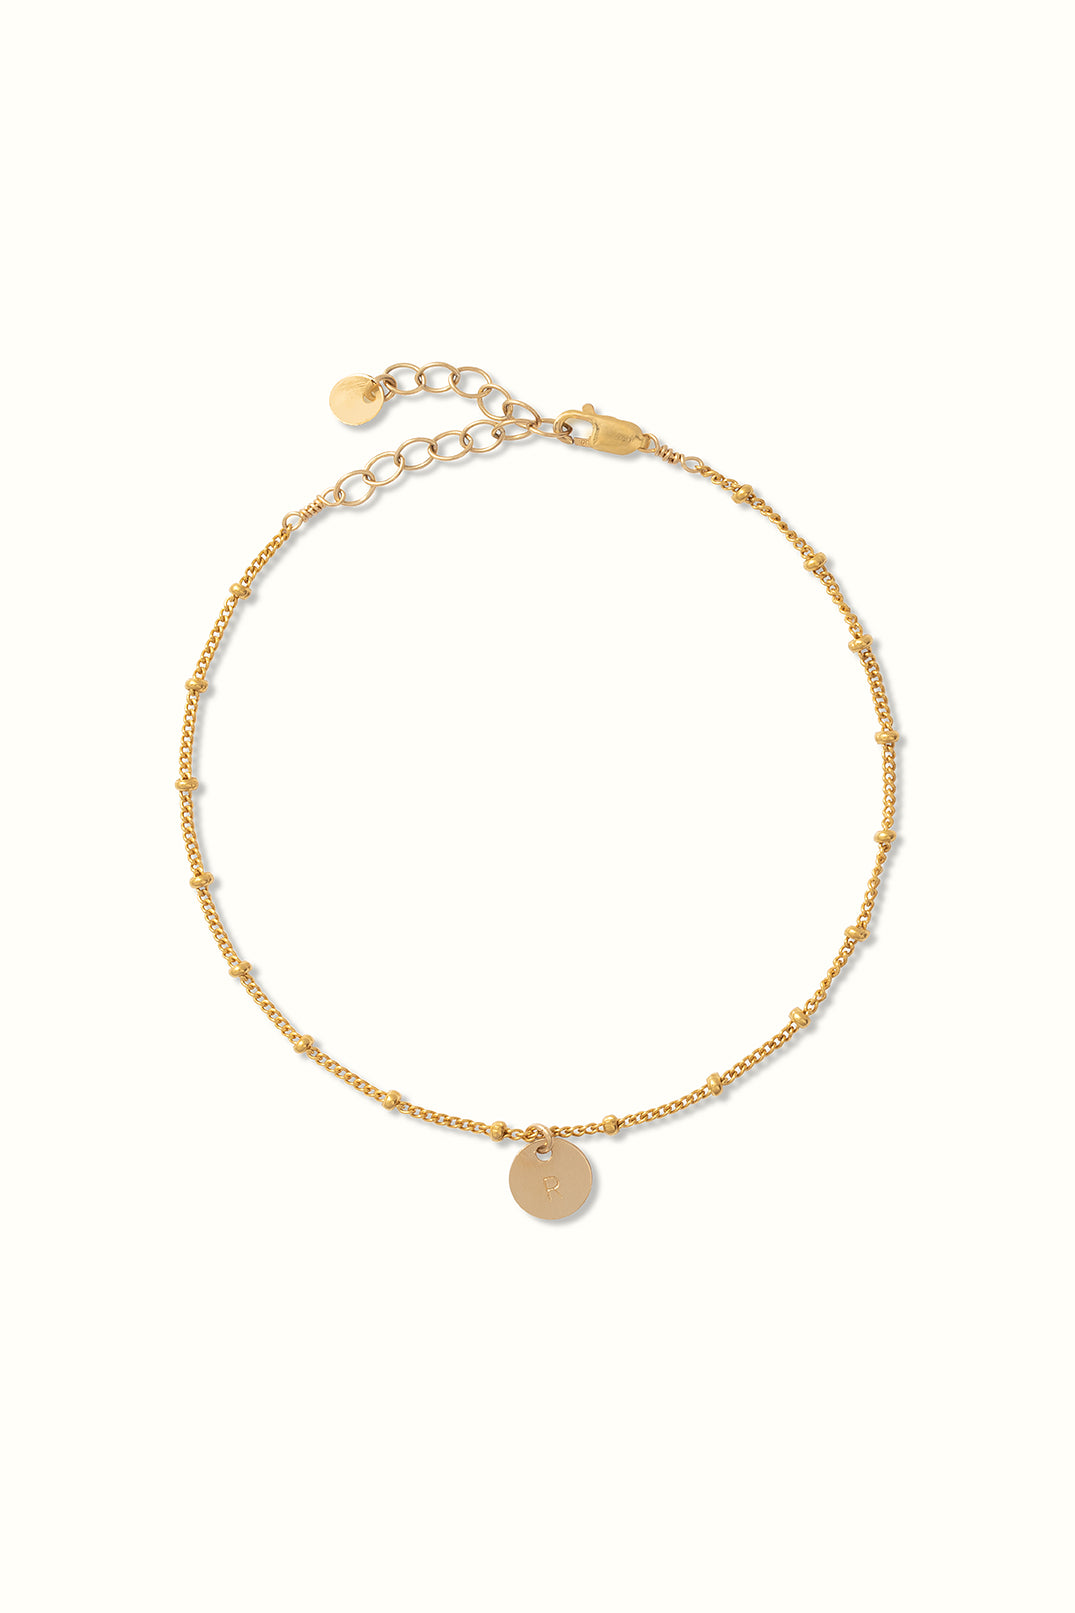 a product close up of a gold filled saturn bracelet with a round initial pendant